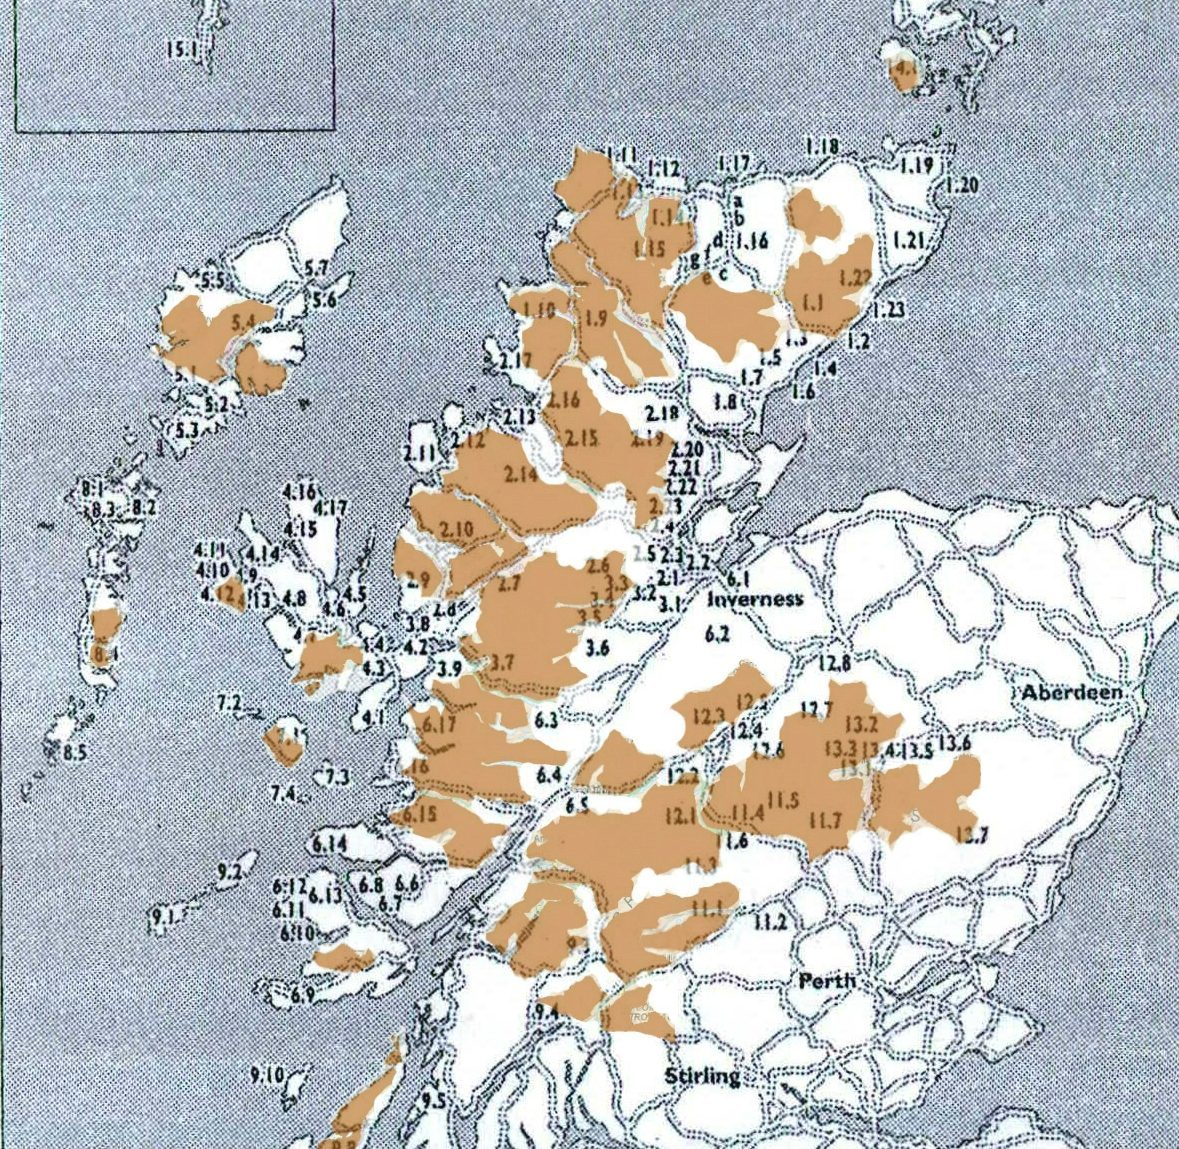 Indicative map of affected communities from Rob Gibson's book The Highland Clearances Trail, published in 2006 by Luath Press.